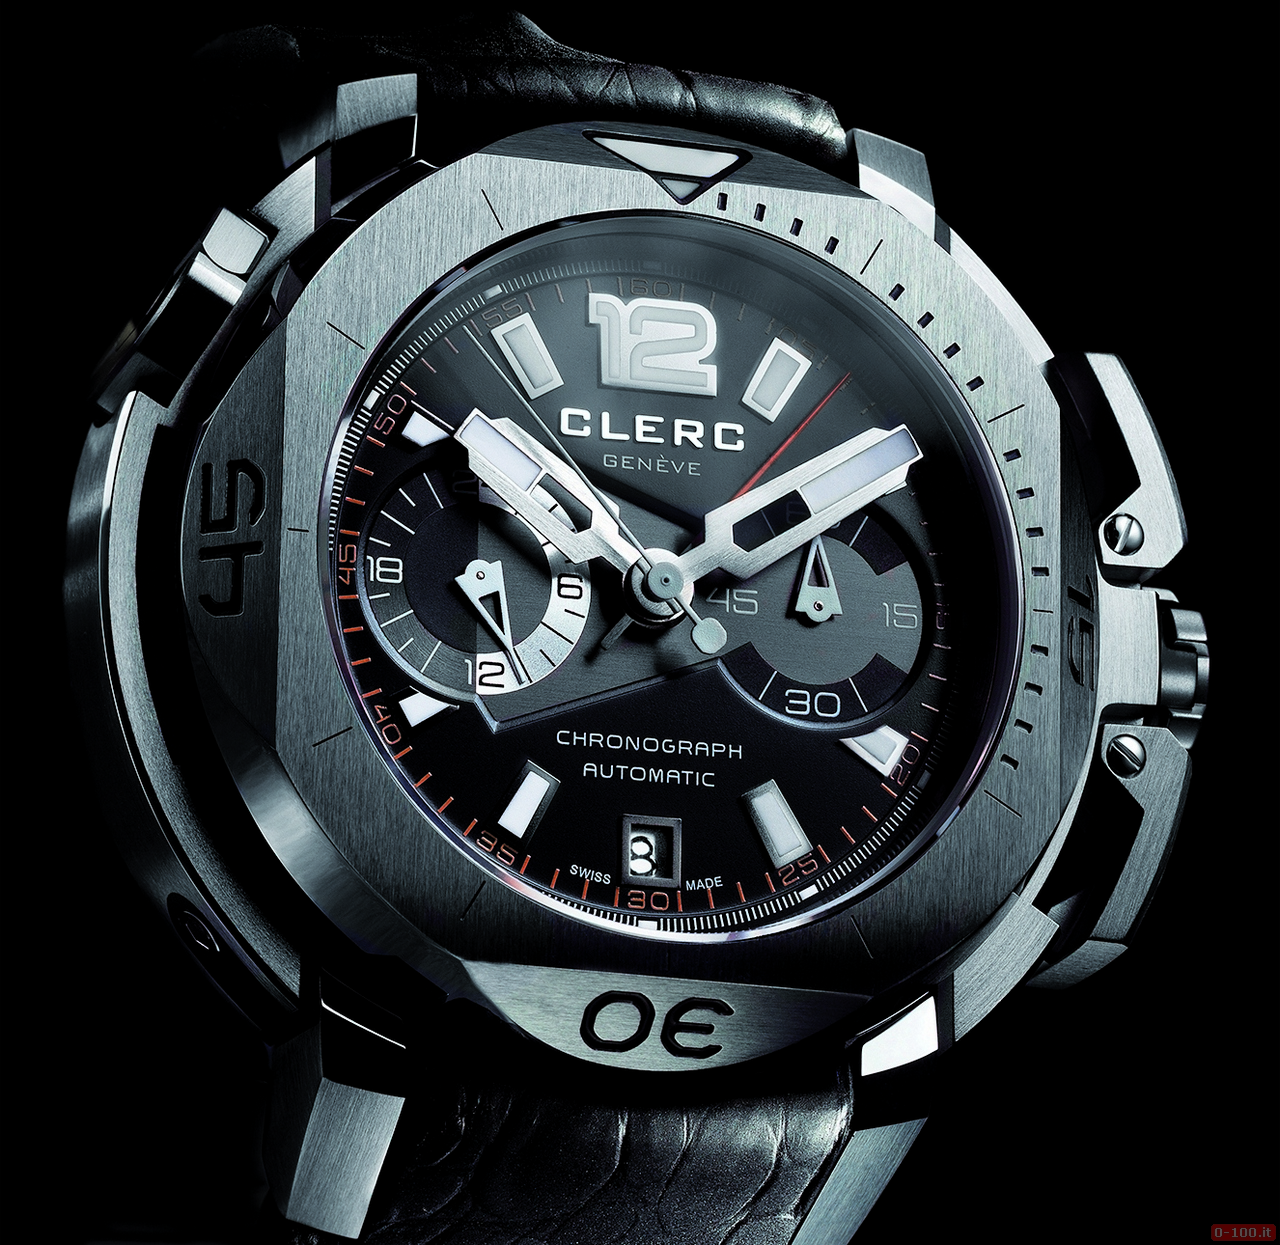 anteprima-baselworld-2014-clerc-hydroscaph-limited-edition-central-chronograph_0-1001